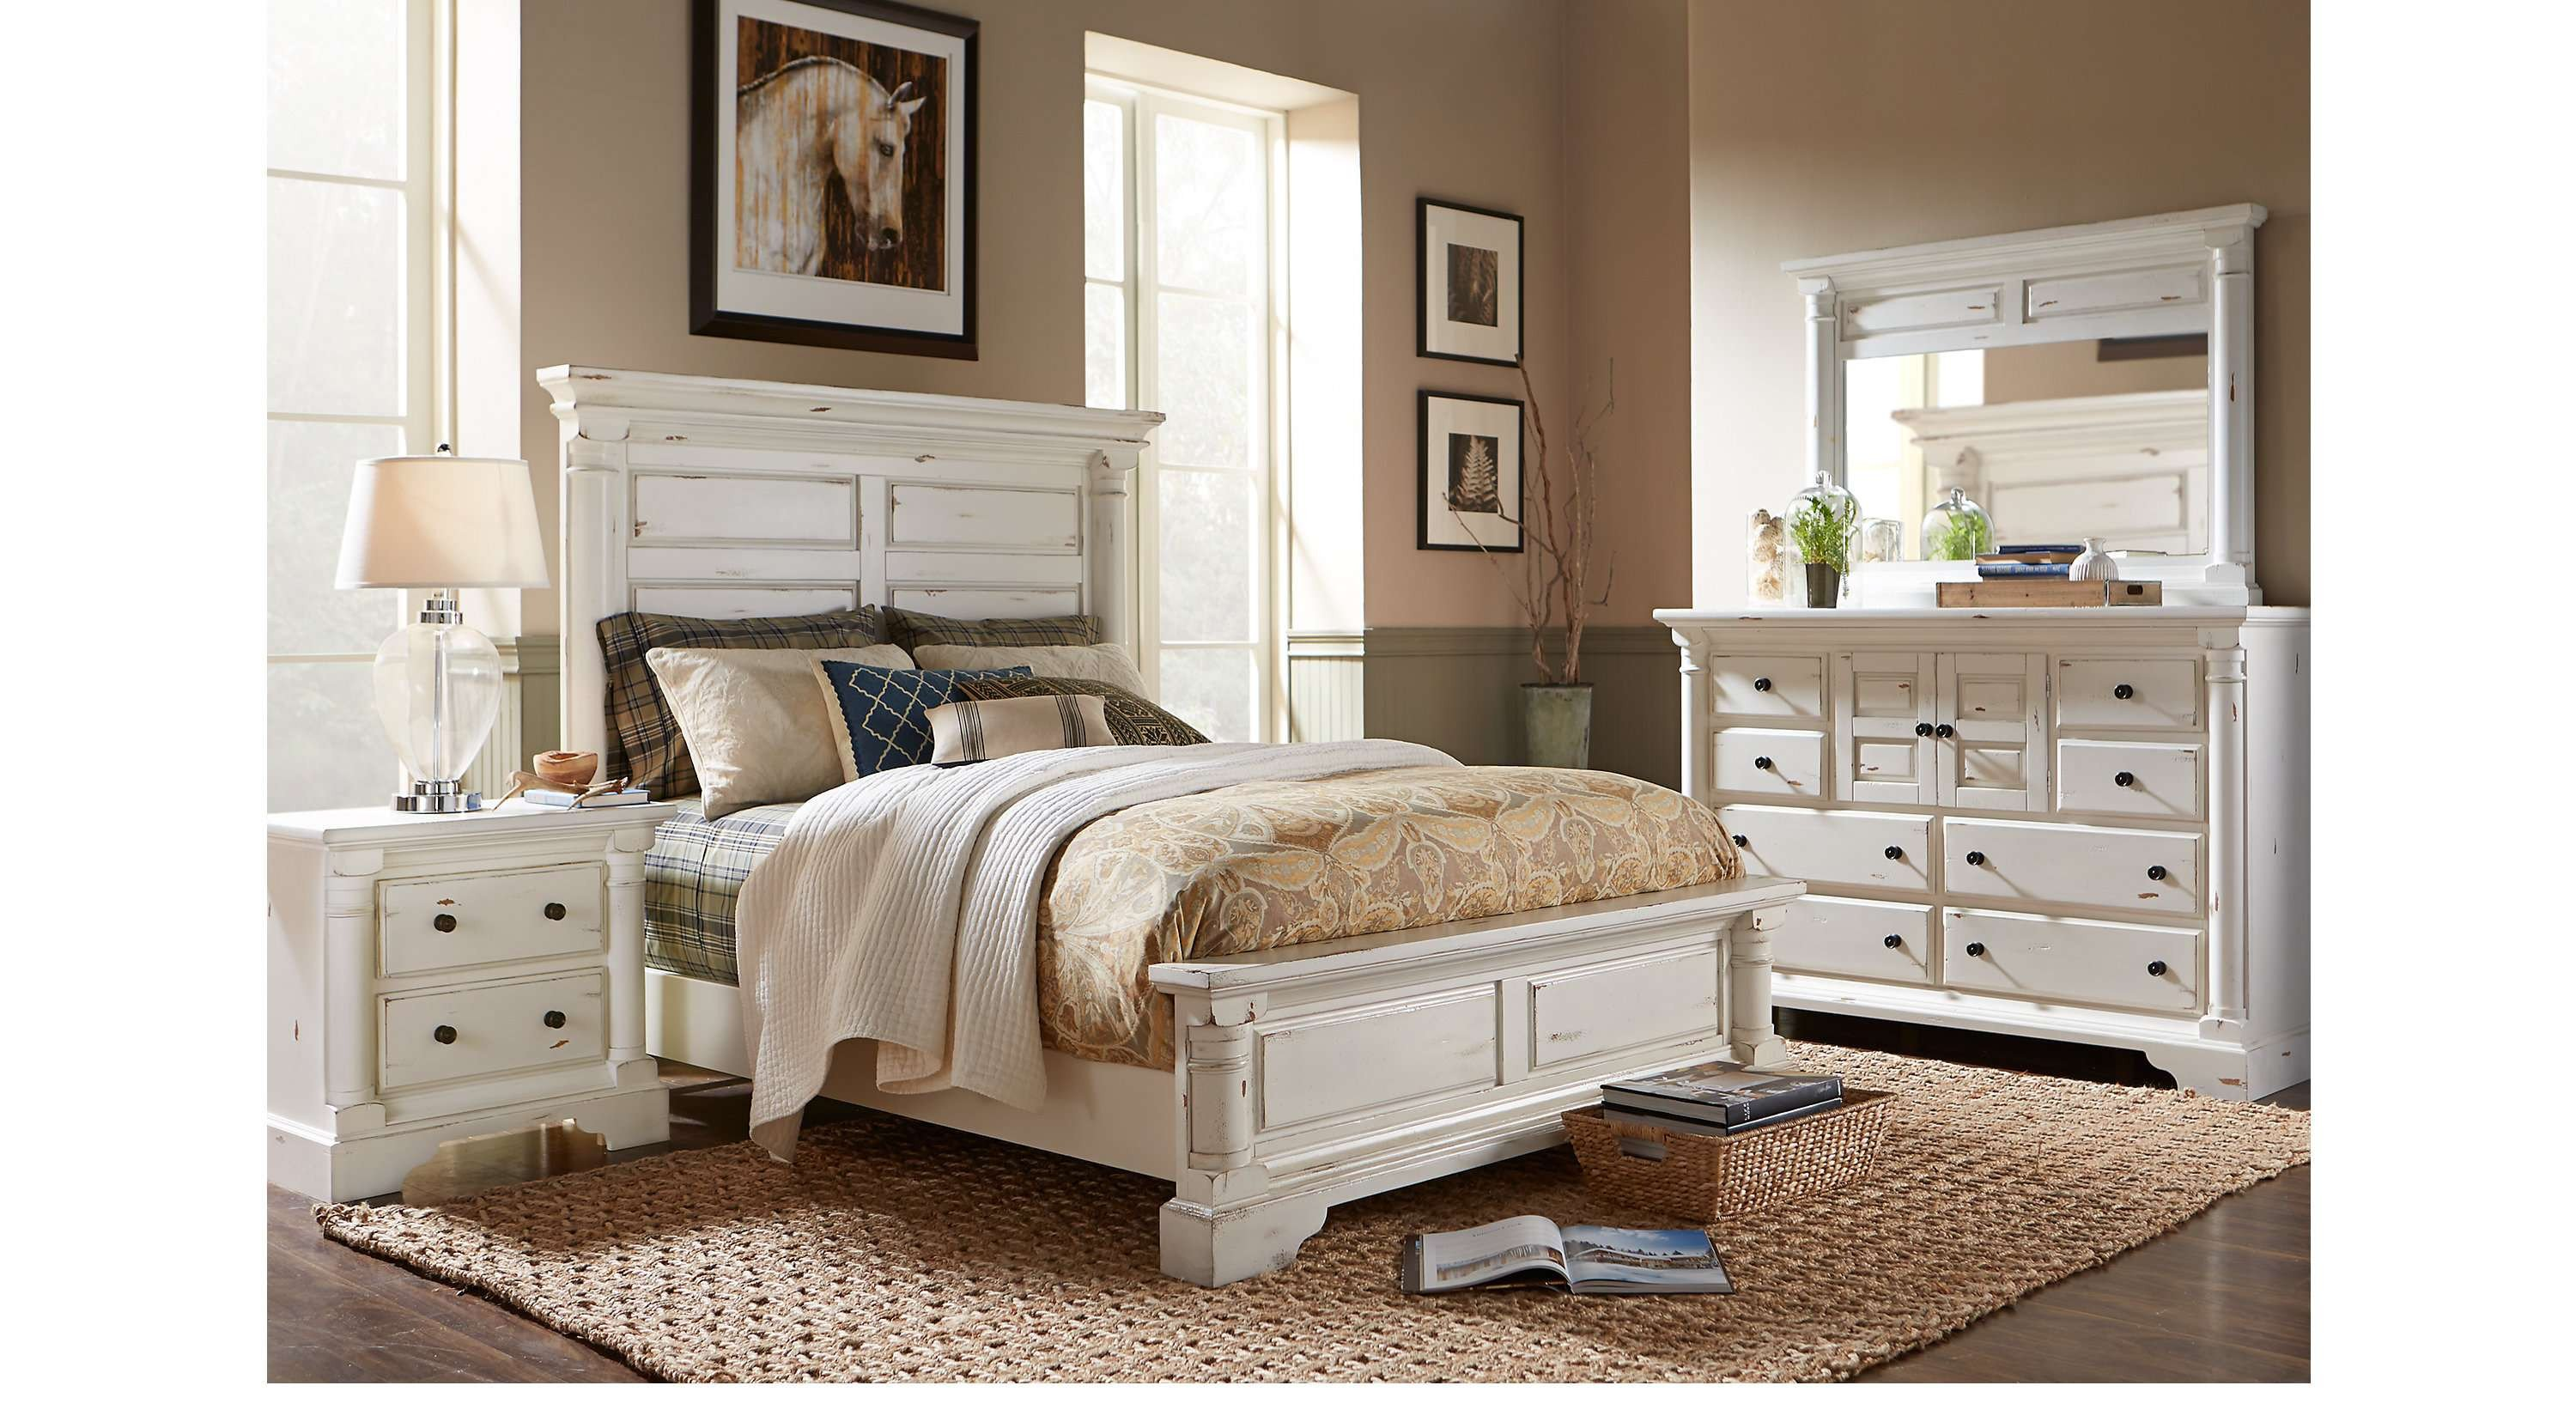 Marilyn Monroe Bedroom Set Best Of Marilyn Monroe Home Sale for Million asian News Bedroom